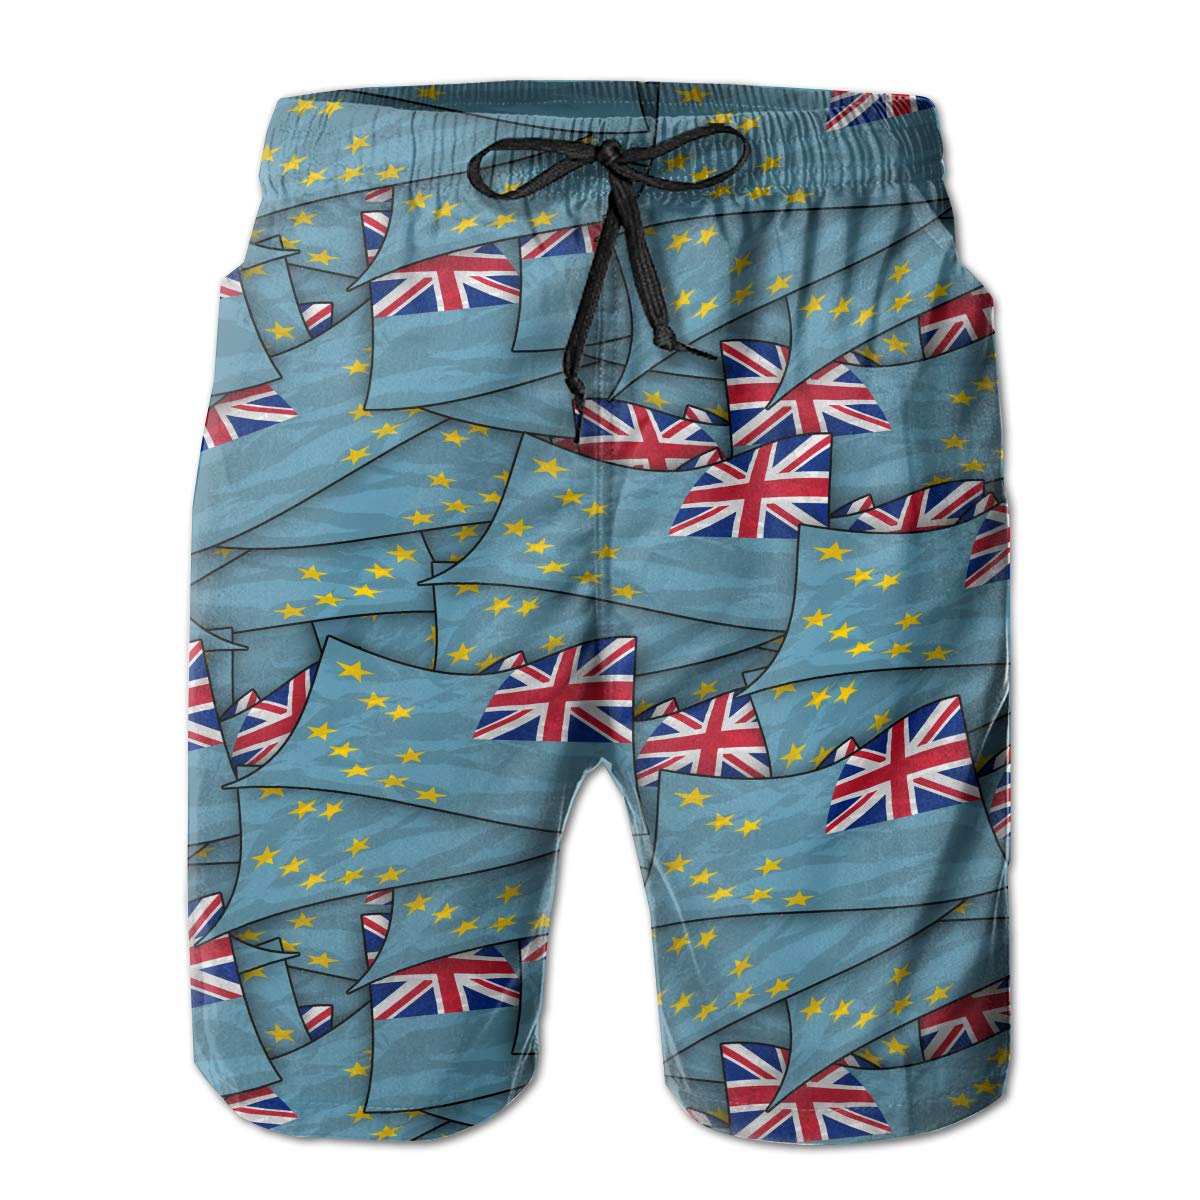 Mens Swim Trunks Tuvalu Flag Wave Collage Quick Dry Beach Board Shorts with Mesh Lining